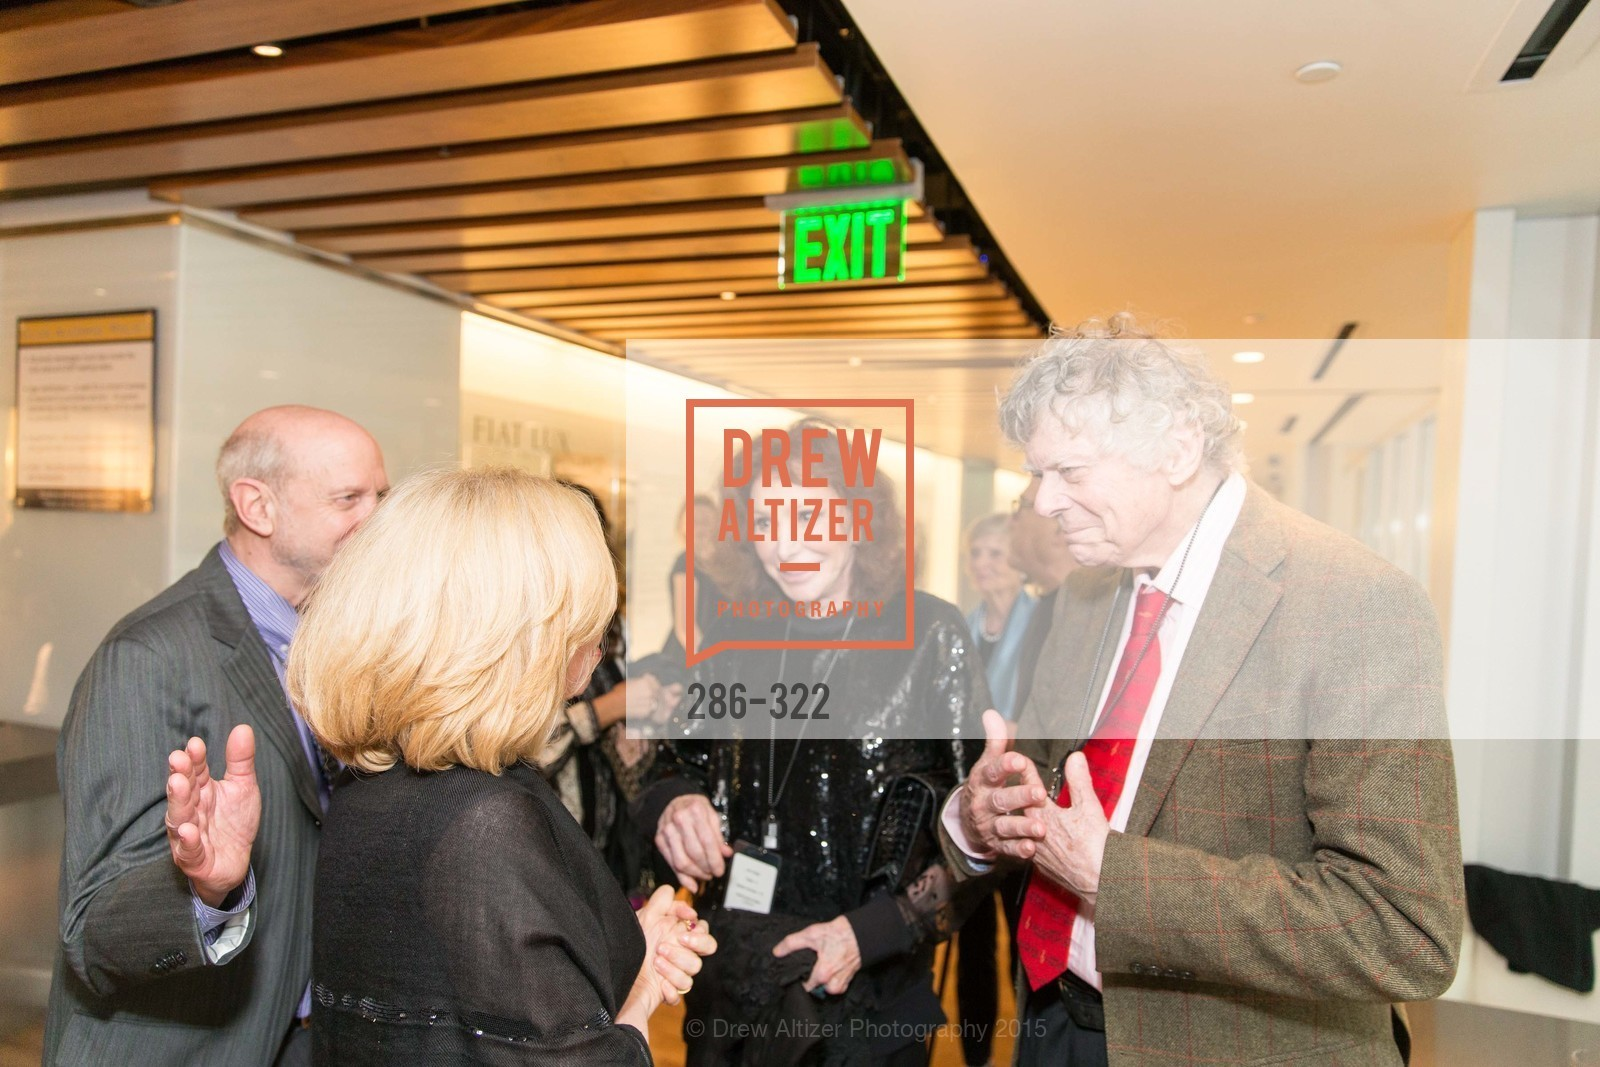 Ann Getty, Gordon Getty, Gala at The Greek Benefiting Cal Performances, UC Berkeley's Greek Theatre. 2001 Gayley Rd, September 25th, 2015,Drew Altizer, Drew Altizer Photography, full-service agency, private events, San Francisco photographer, photographer california